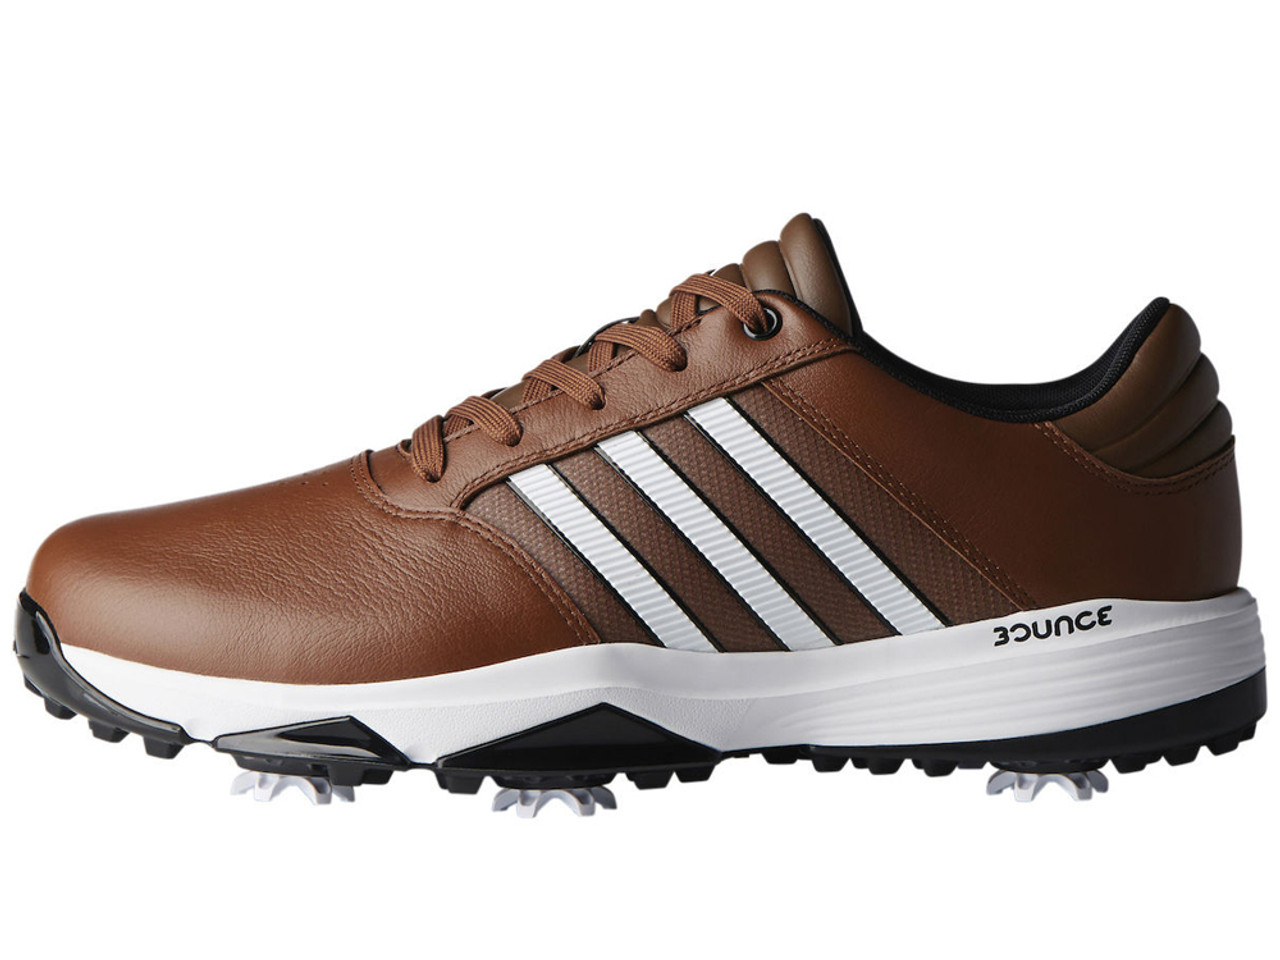 606fe41e450625 Adidas 360 Bounce Golf Shoes - Tan Brown FWTR White Black - Mens For ...